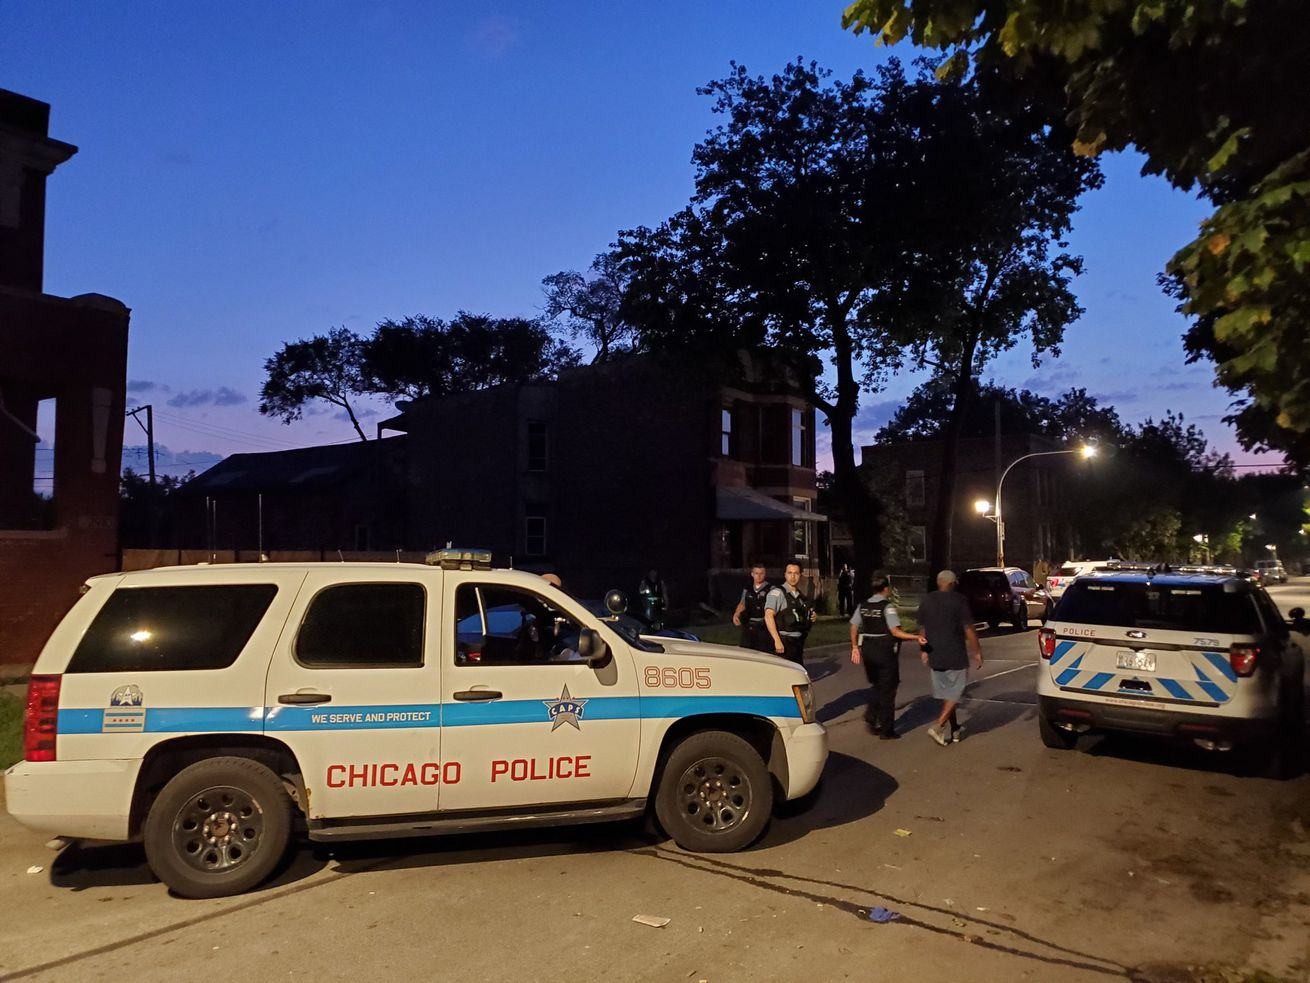 Man shoots intruder in backyard in East Garfield Park